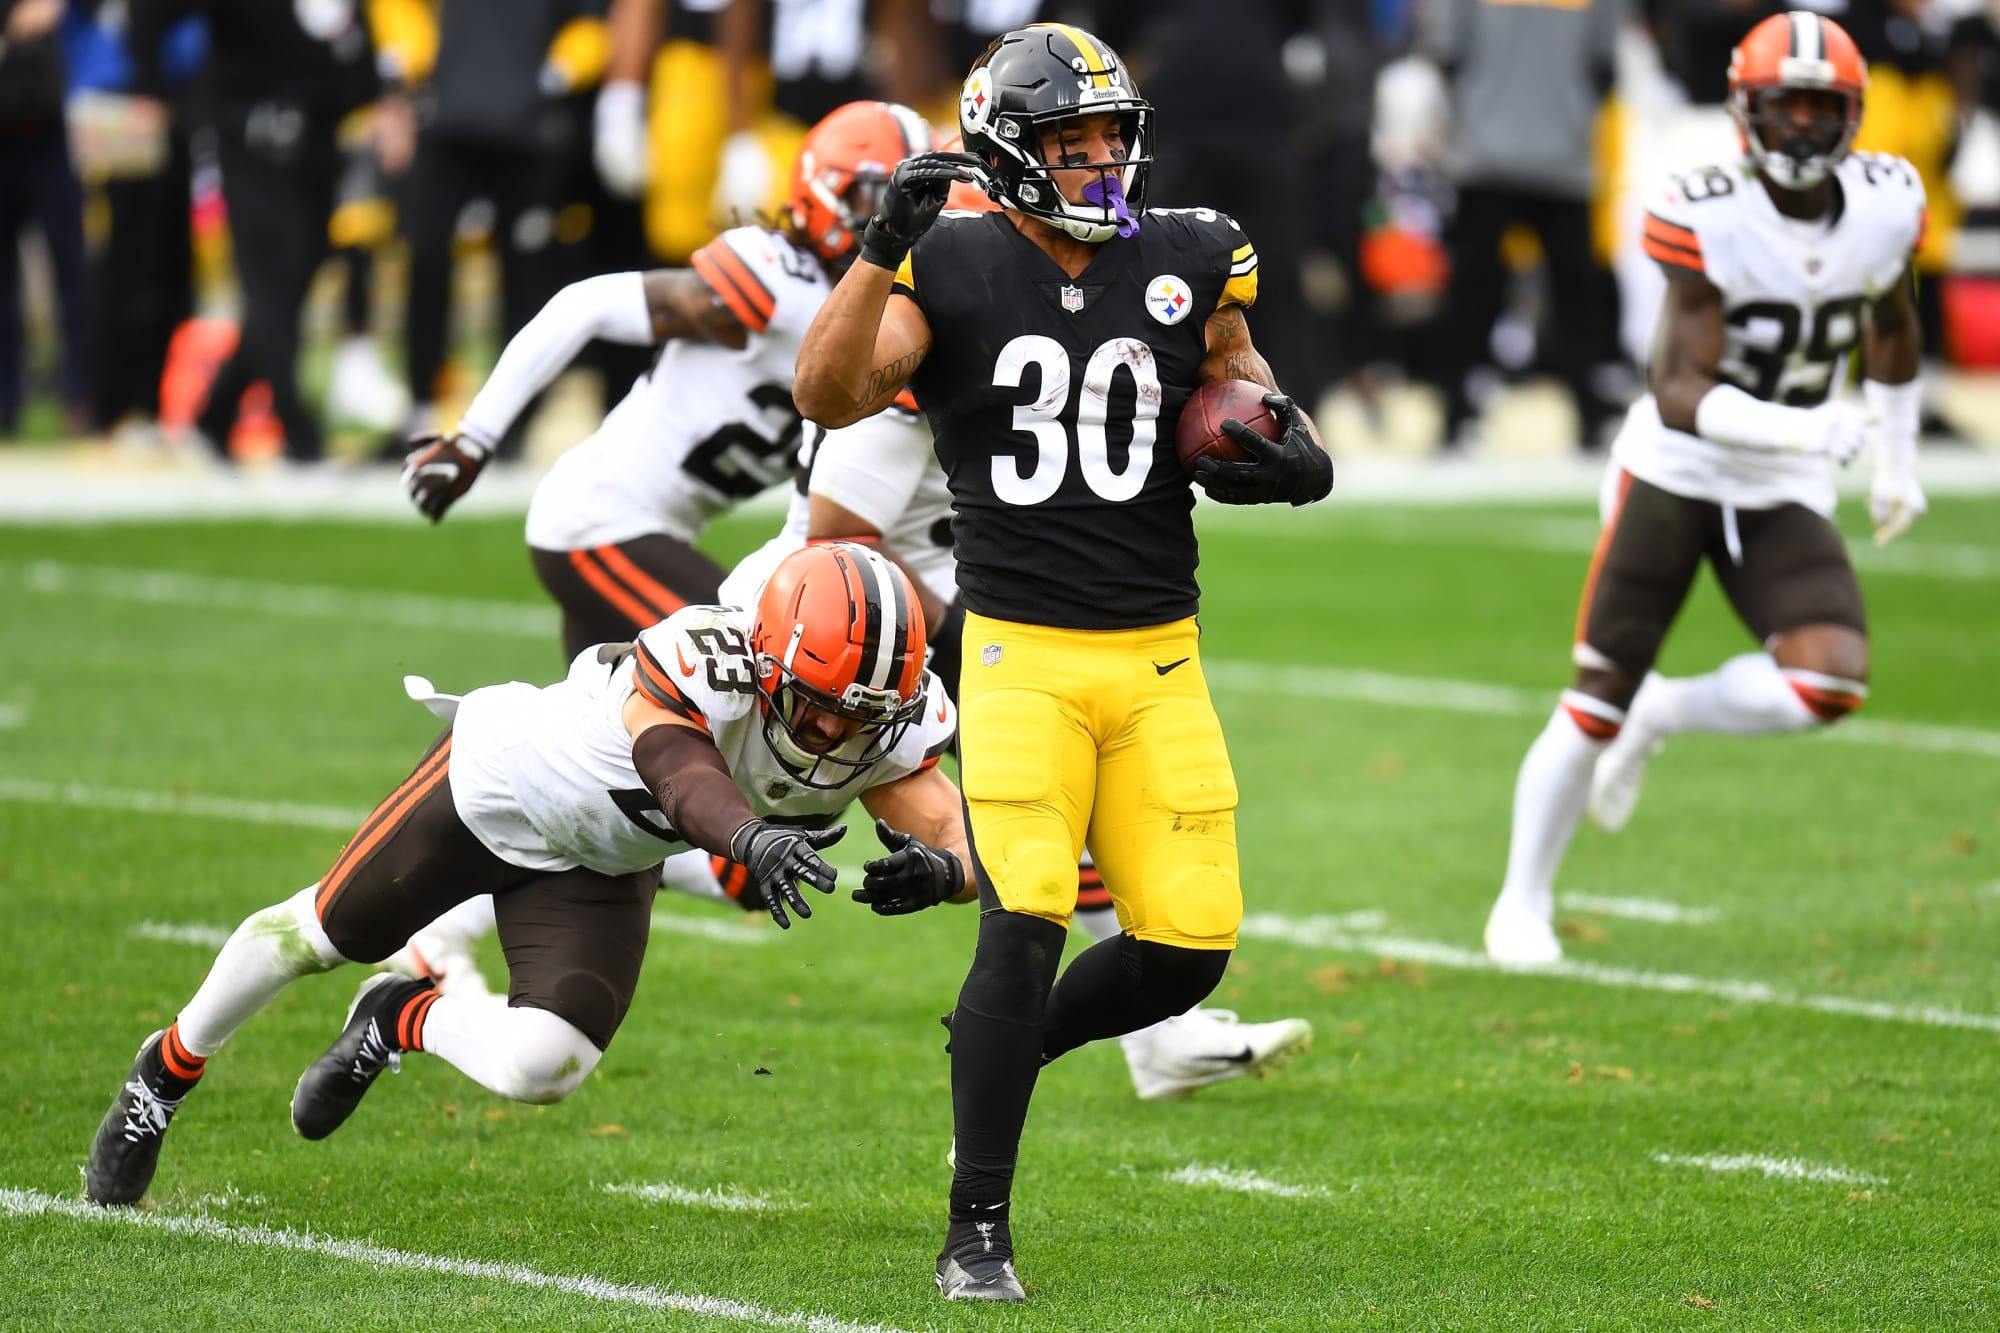 Steelers are serious dark horse Super Bowl contenders